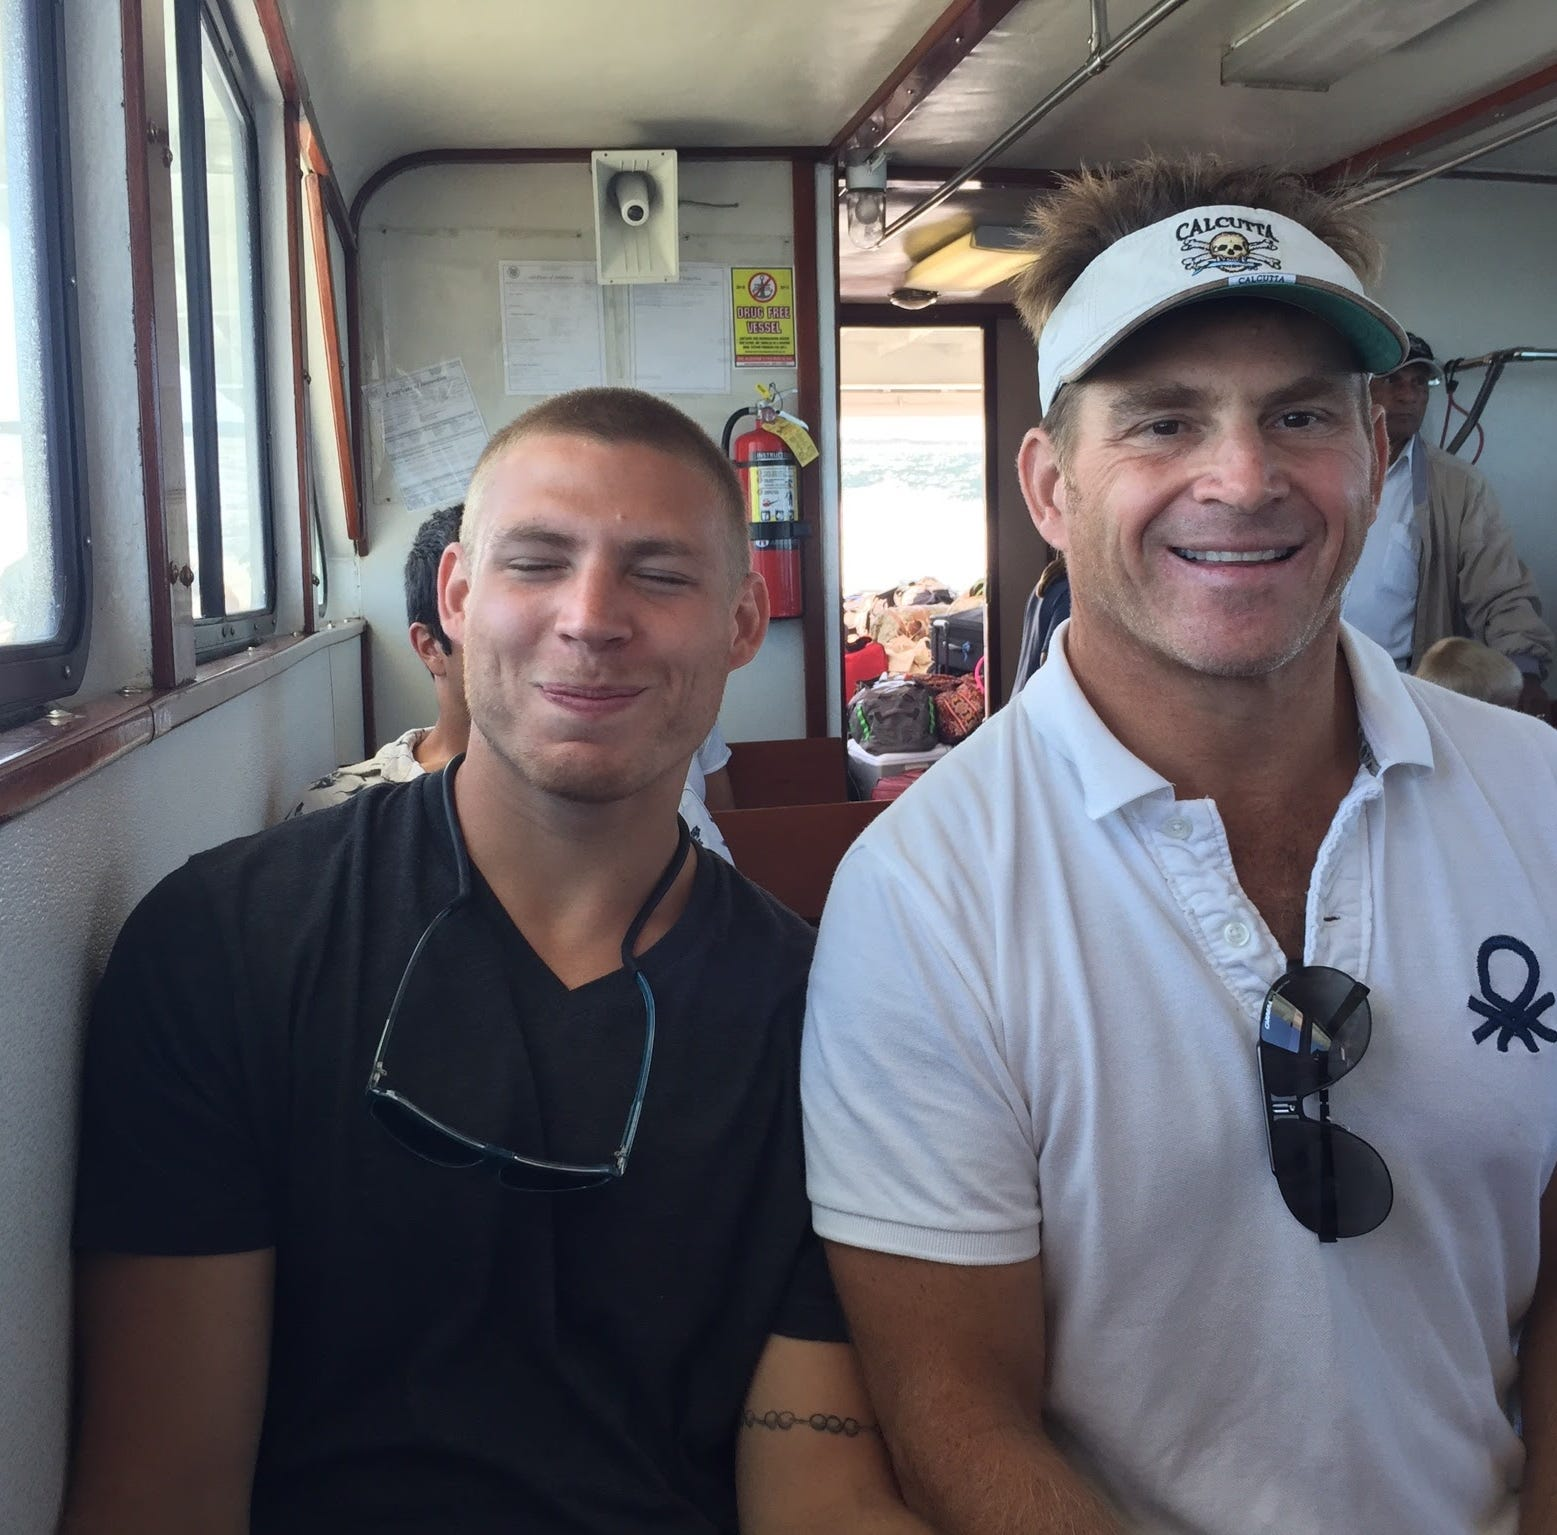 After heartbreak, Naples father offers surprise donation to help fight opioid addictions